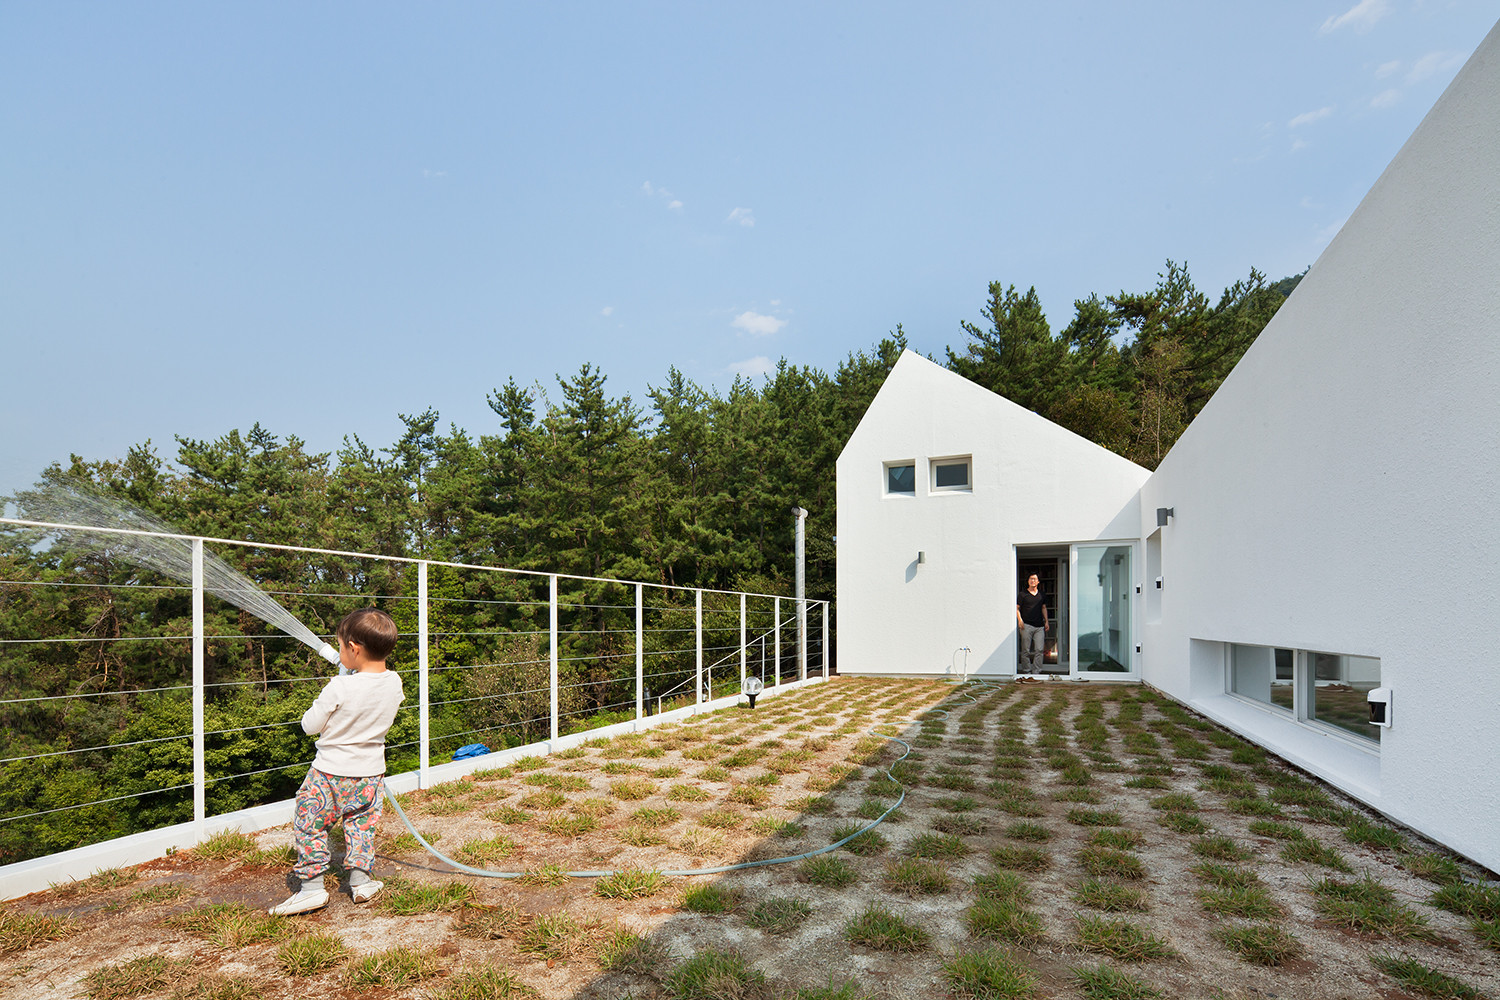 Gallery of net zero energy house lifethings 19 for Zero net energy home